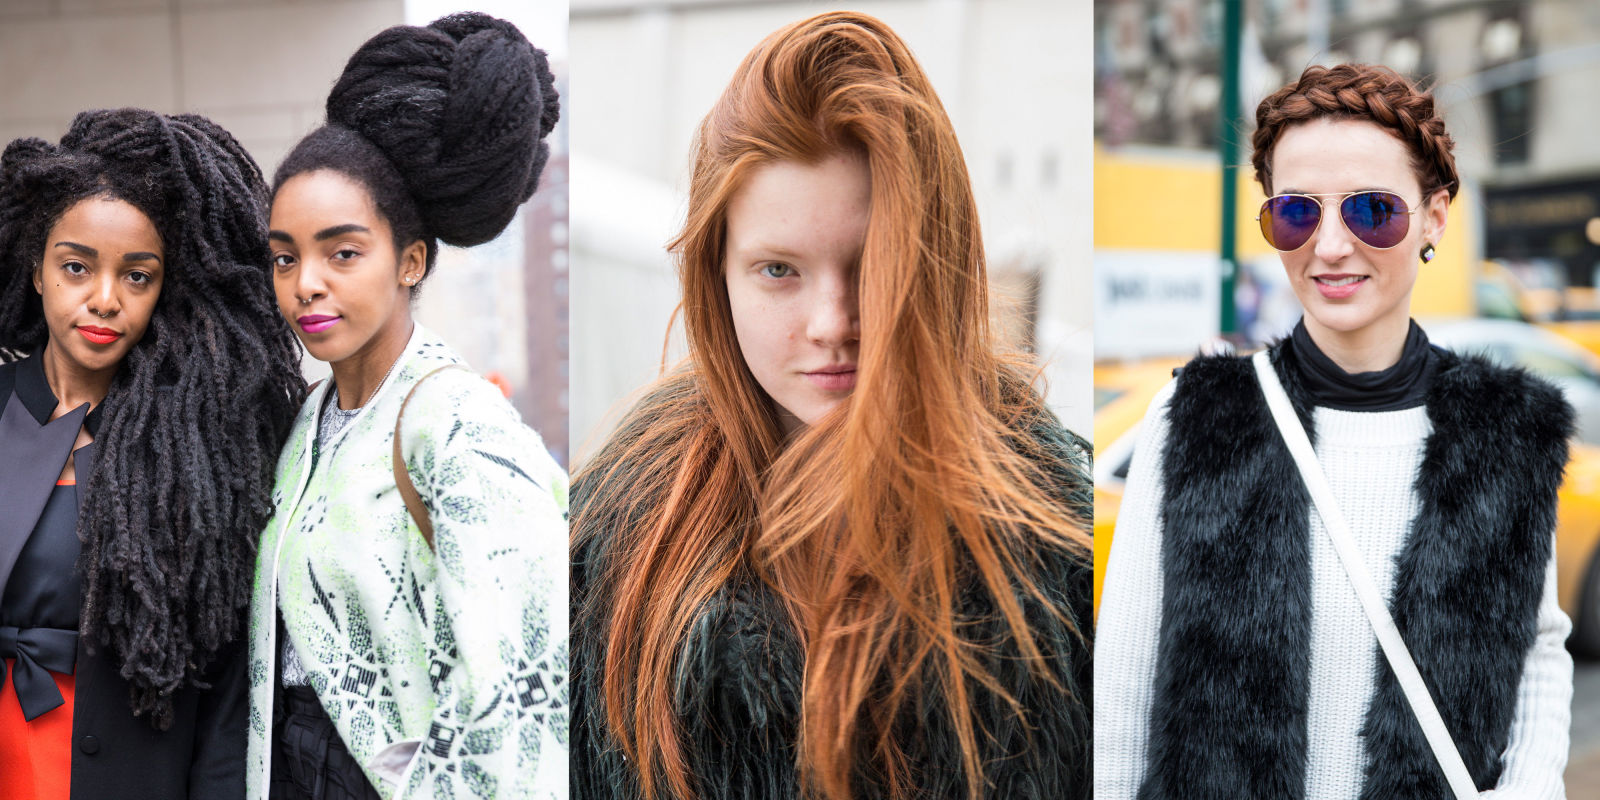 Hair Styler H Twom: The Best Hairstyles At NYFW Photos